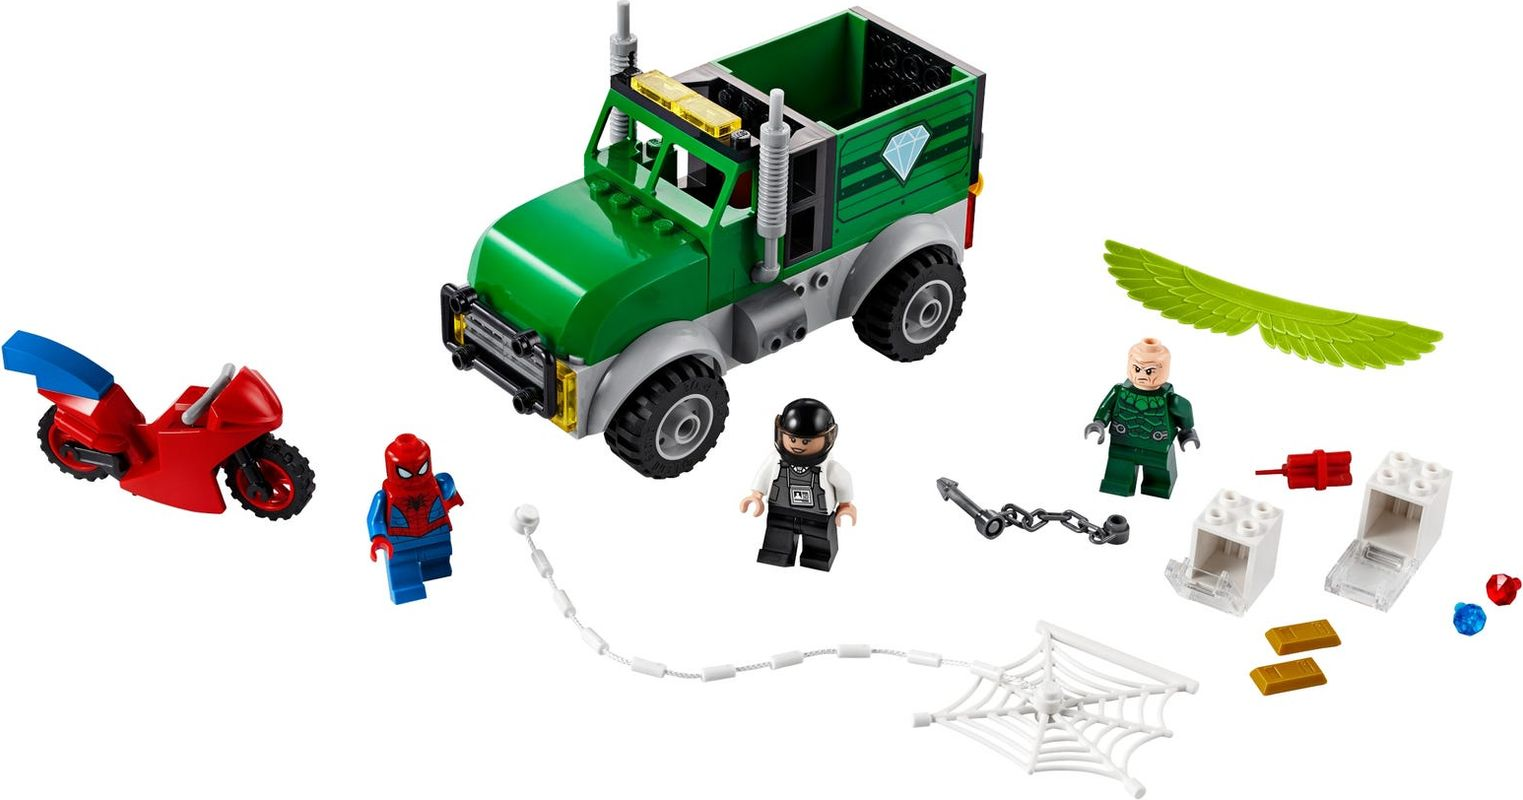 Vulture's Trucker Robbery components